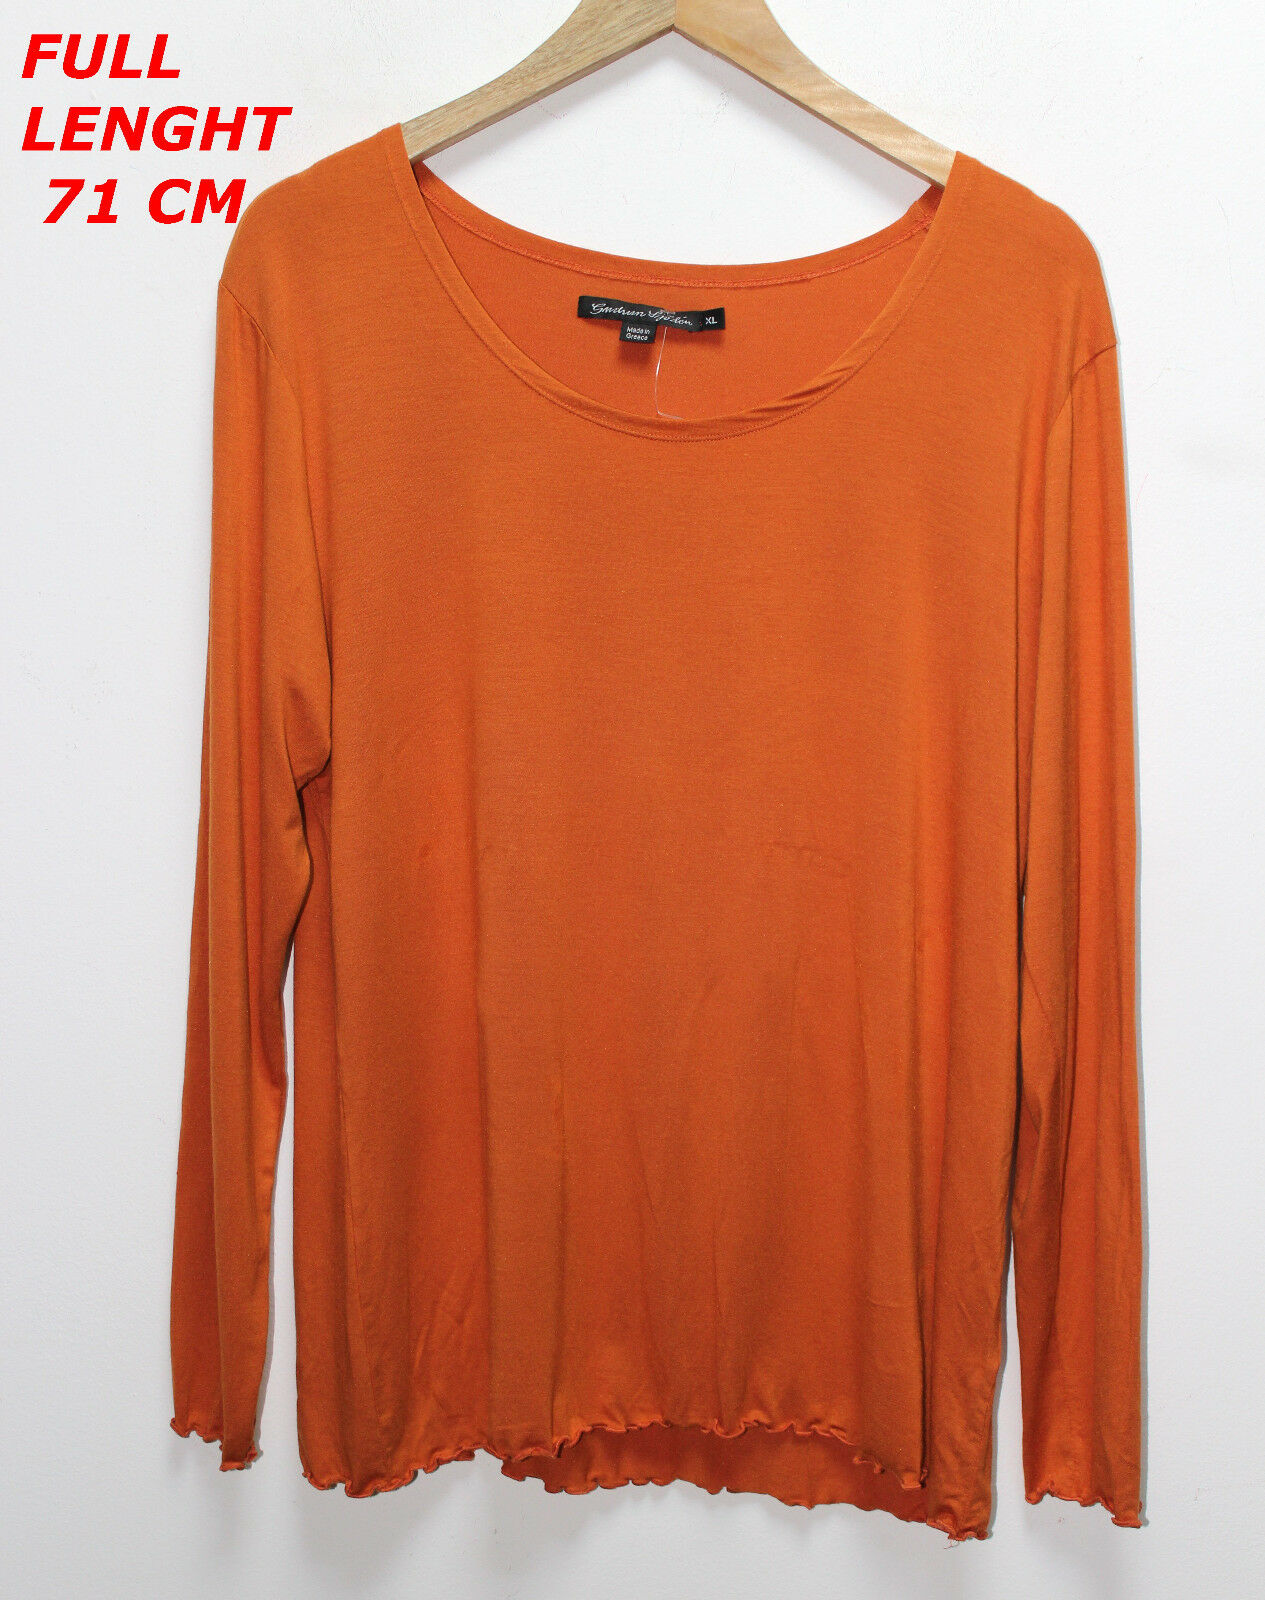 GUDRUN SJODEN SJÖDÉN  LADIES WOMAN BLOUSE SHIRT MARKED Größe XL Orange Farbe